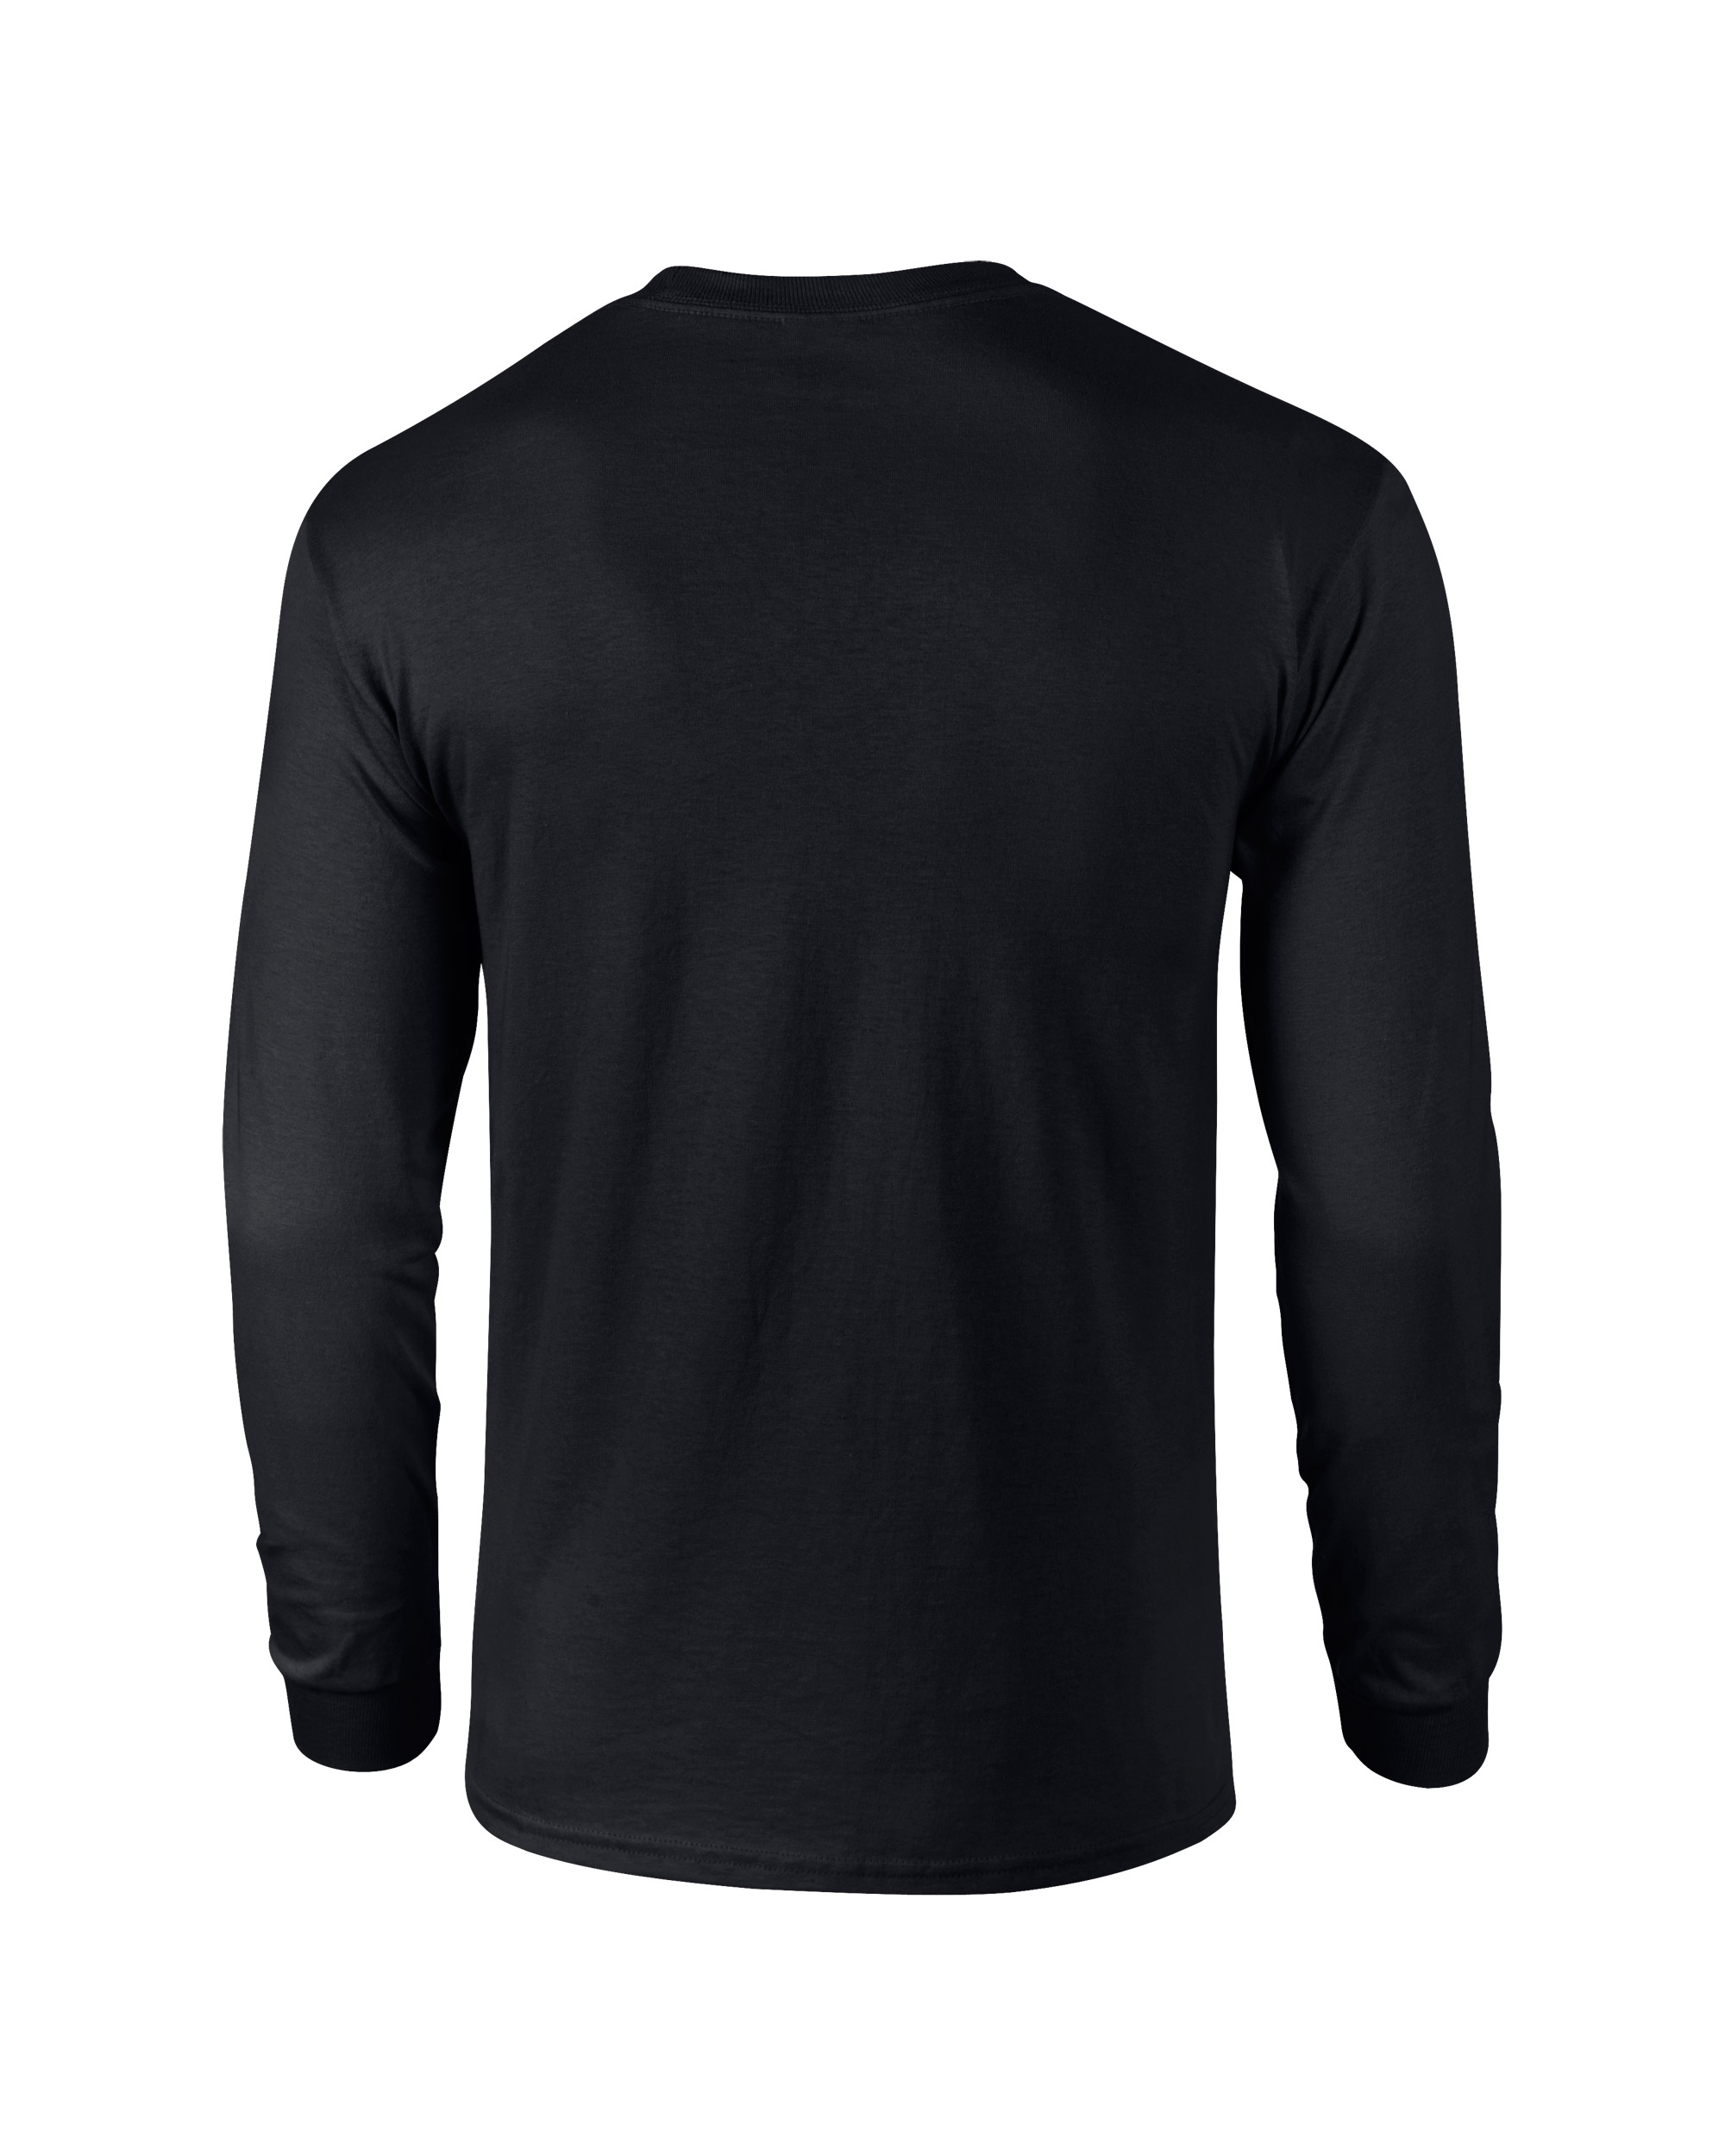 back of black long sleeve shirt